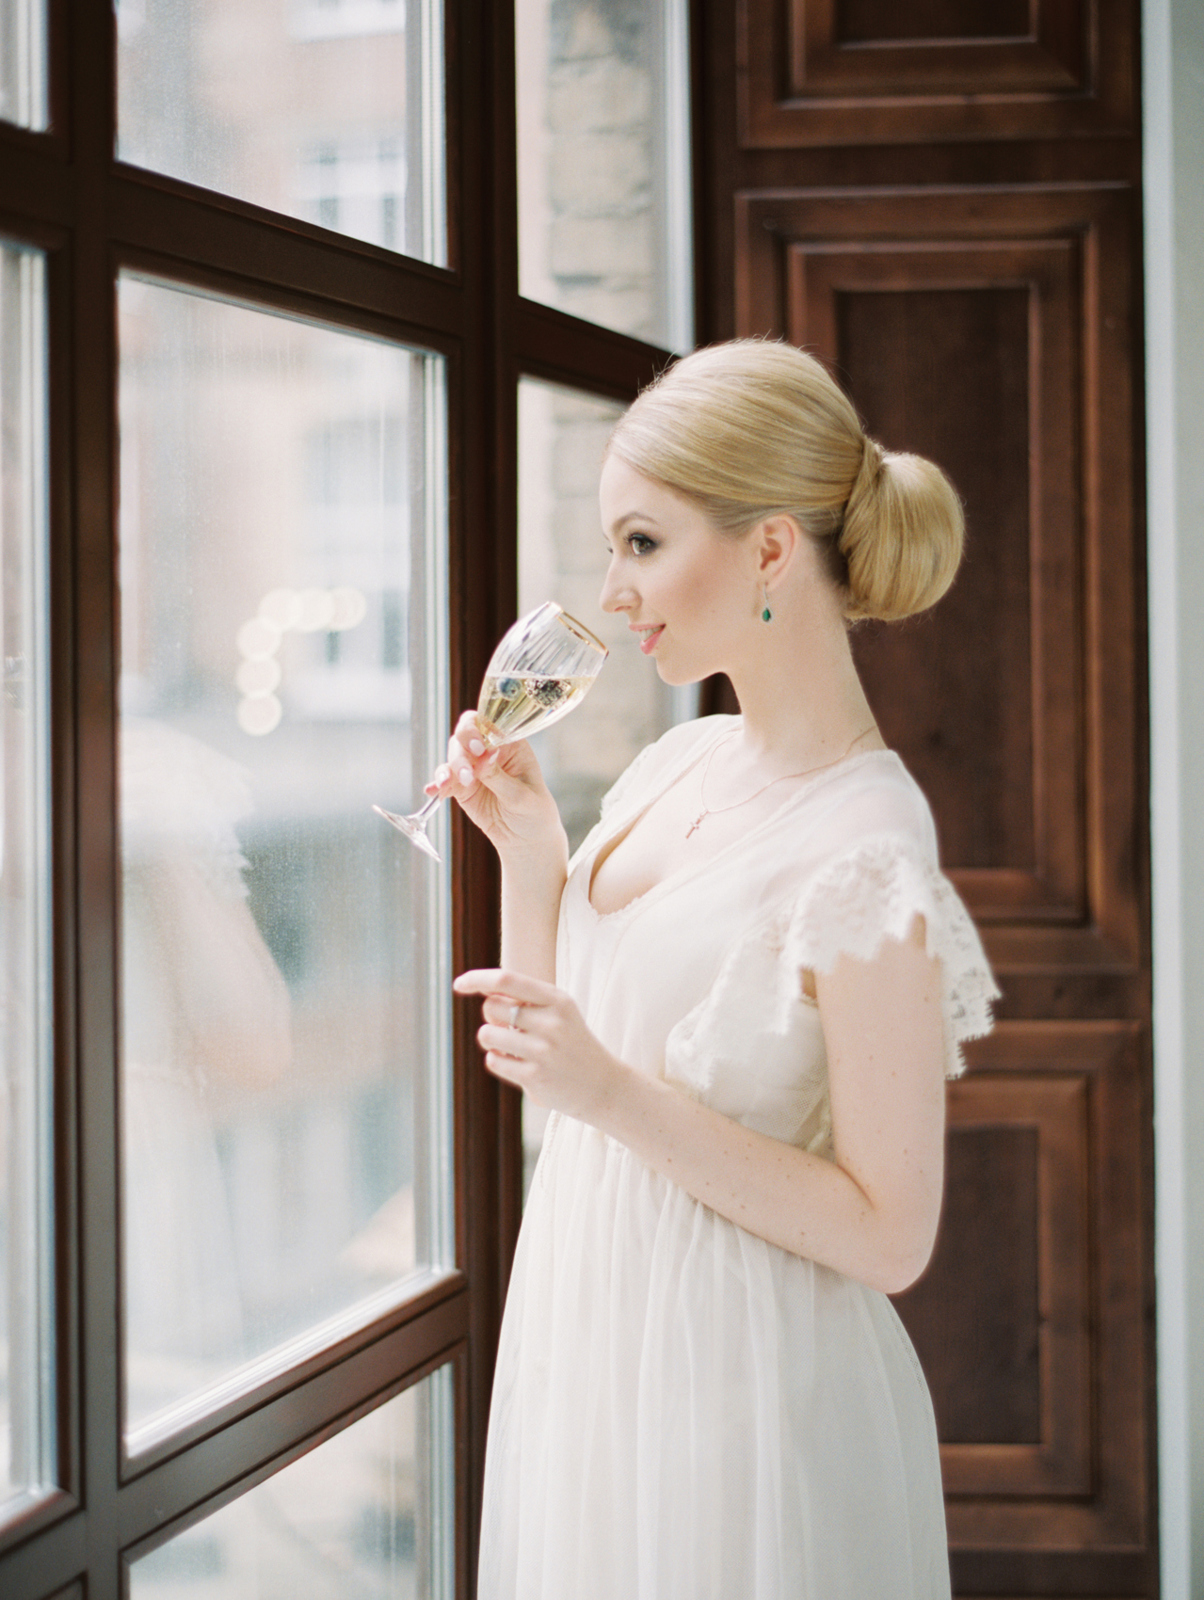 Bride looking at window